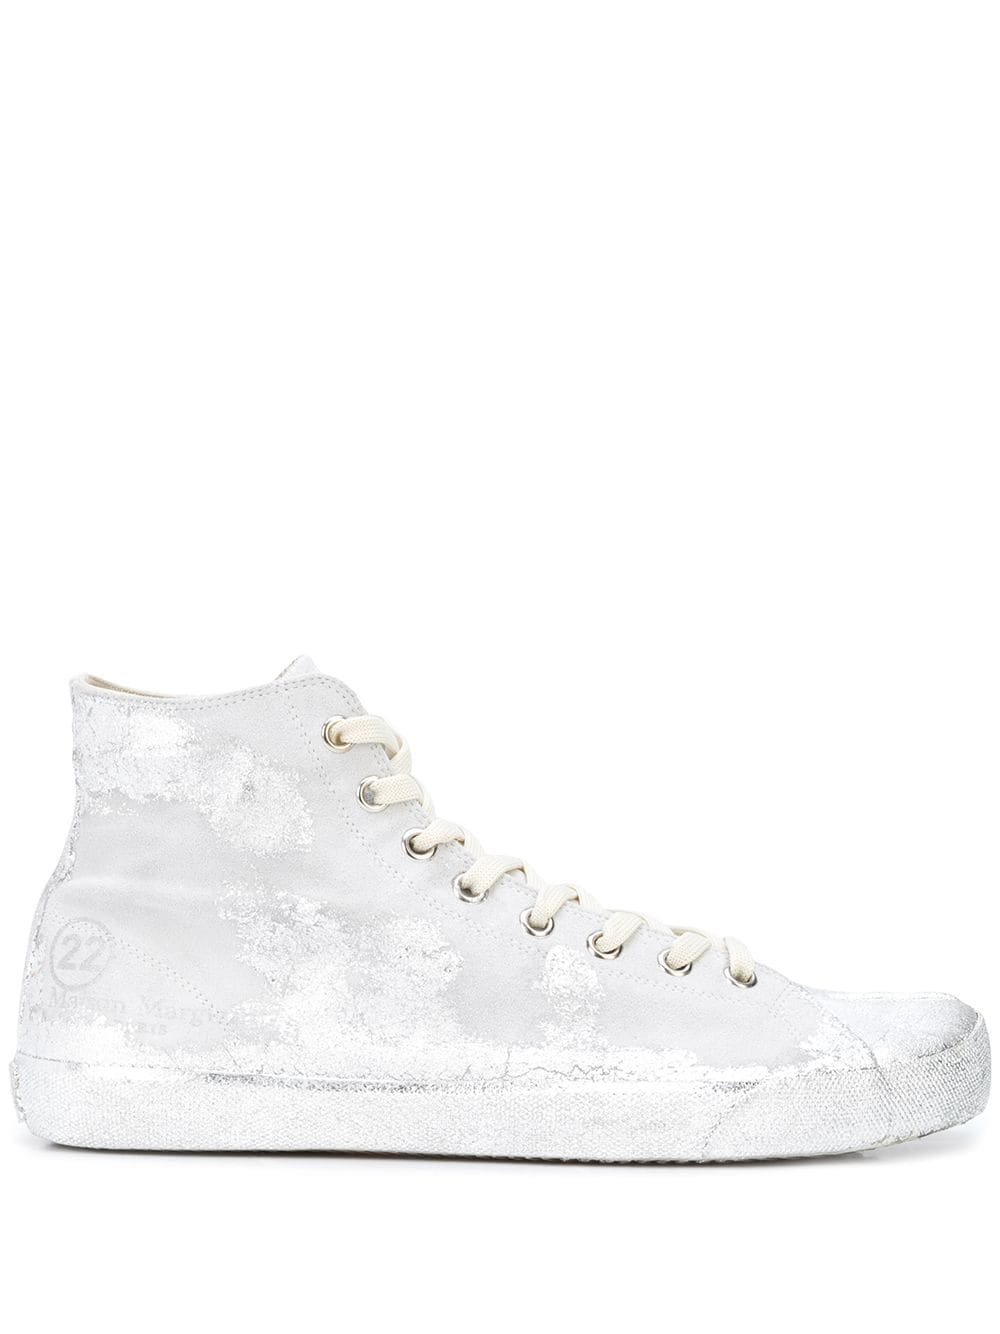 MAISON MARGIELA MEN SILVER PAINTED HIGH TOP TABI SNEAKERS